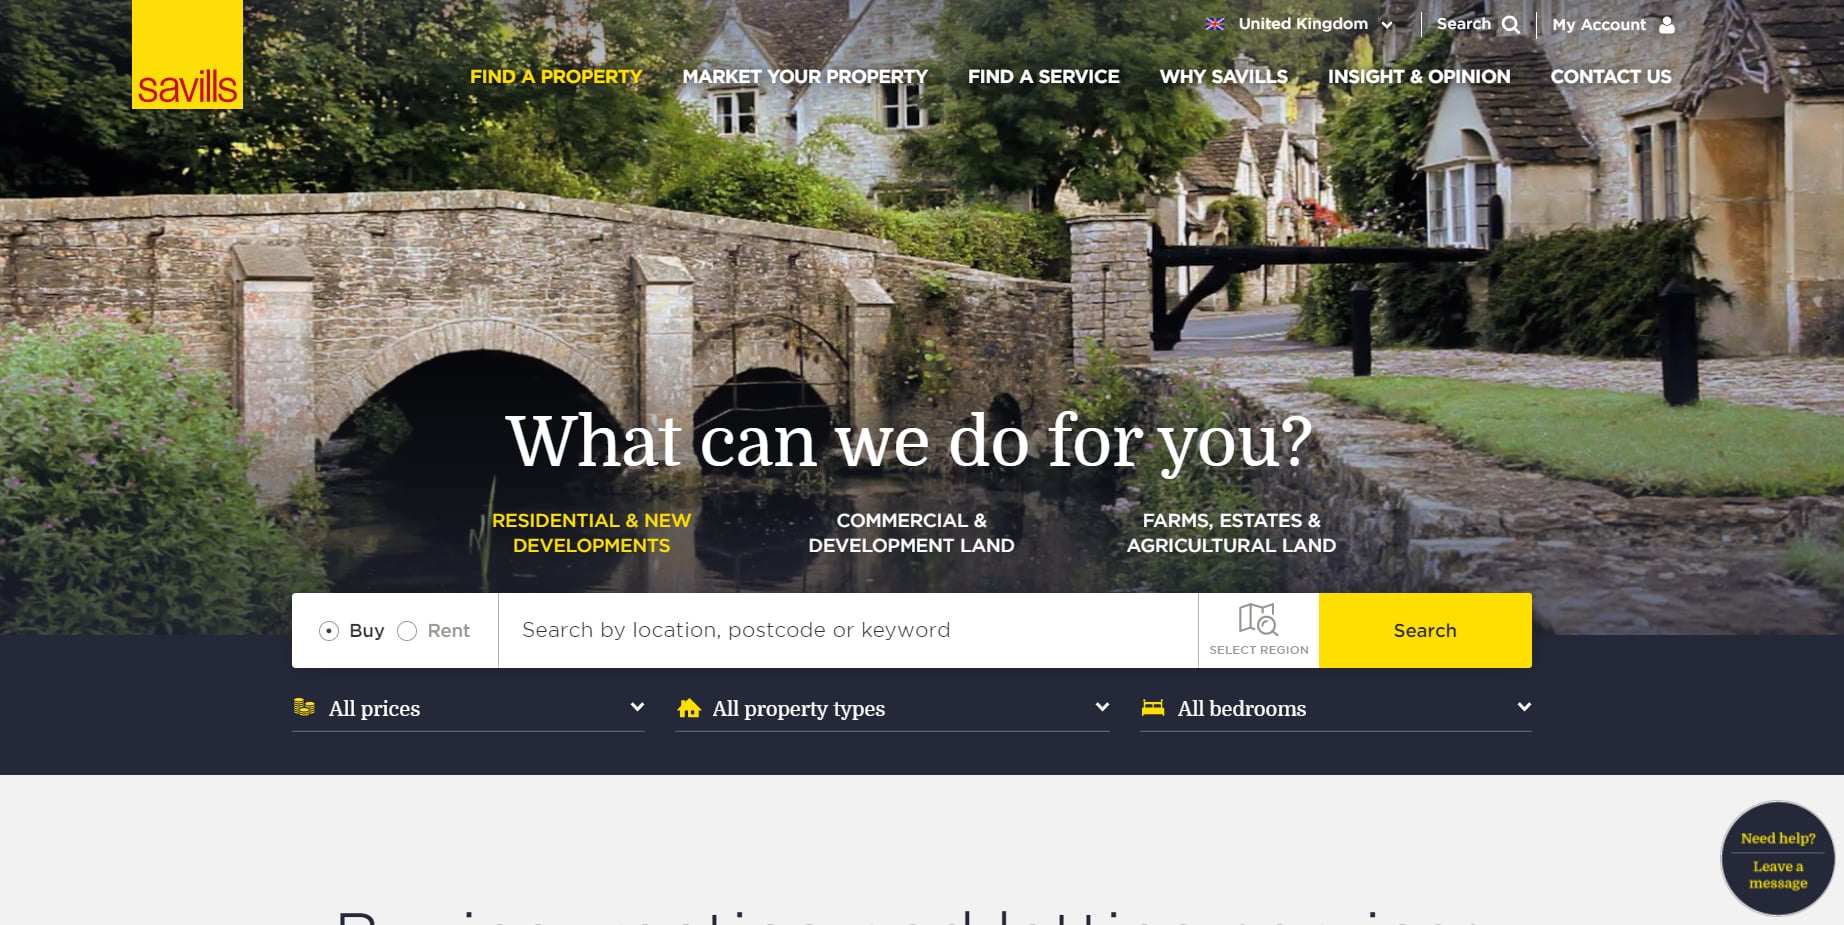 savills real estate landing page